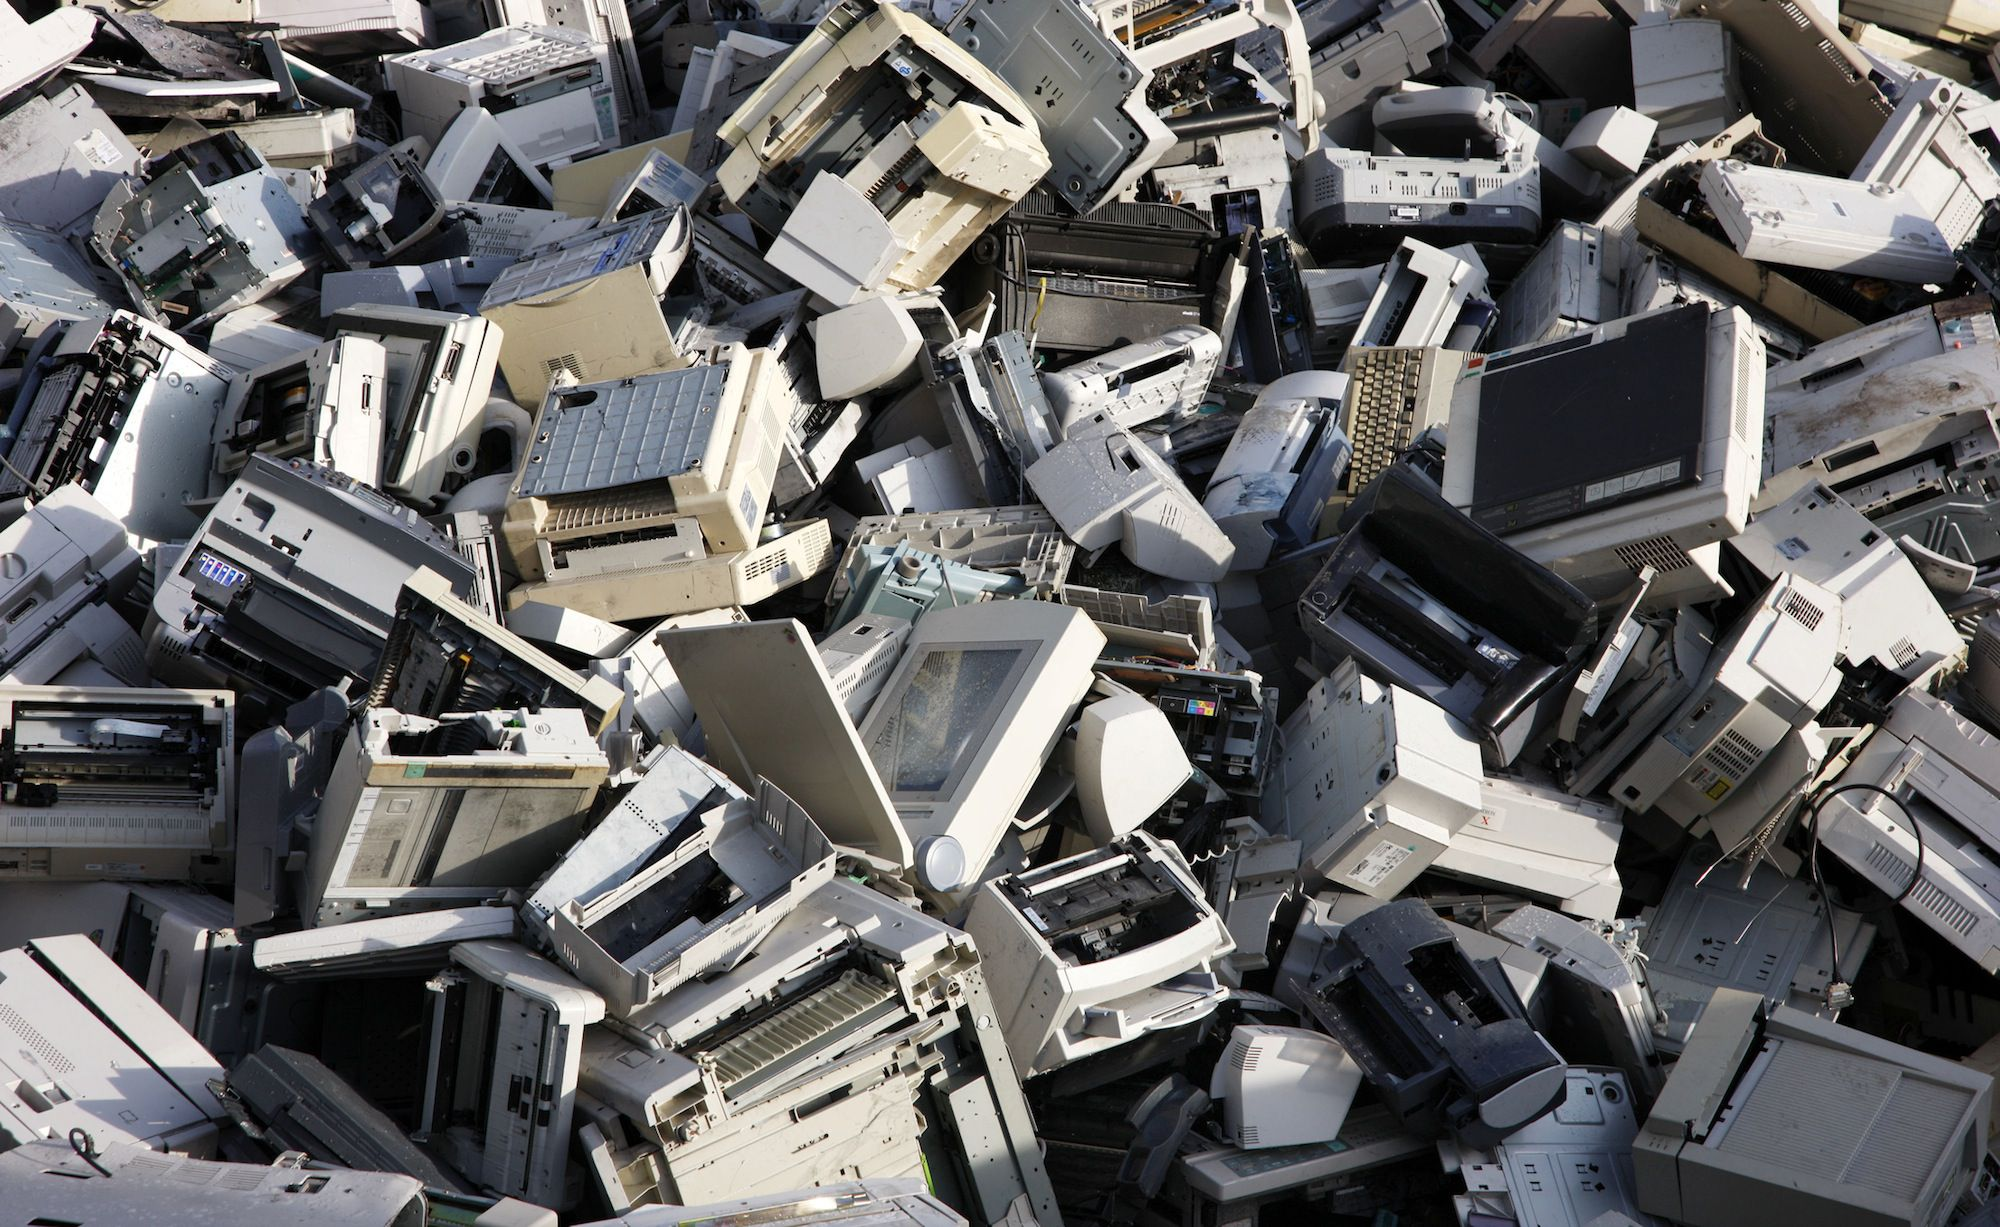 Electronics Recycling Rich Source Of Precious Metals